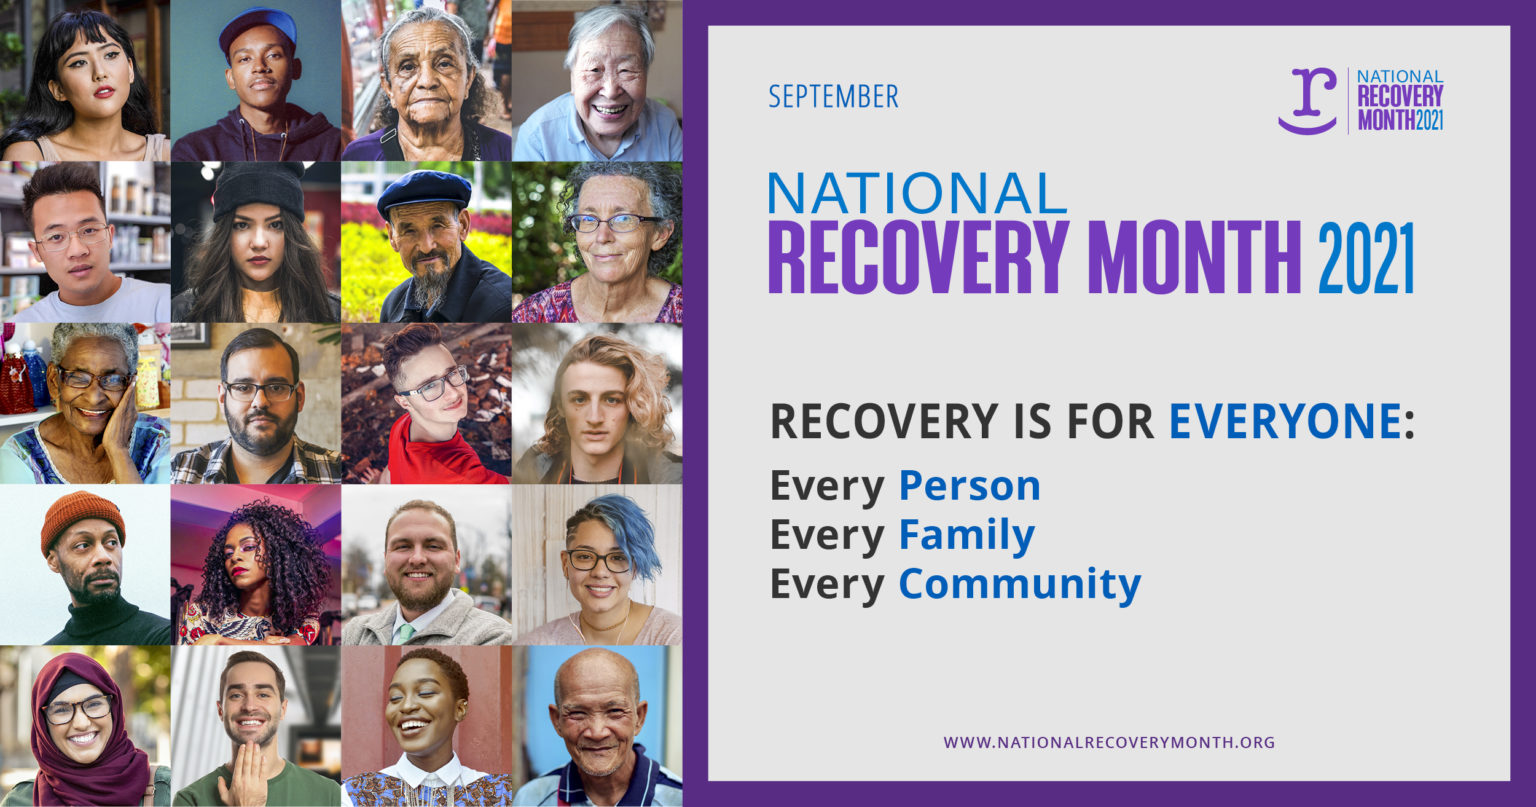 National Recovery Month 2021 logo with collage of faces on left and text Recovery is for everyone: Every person, every family, every community on right